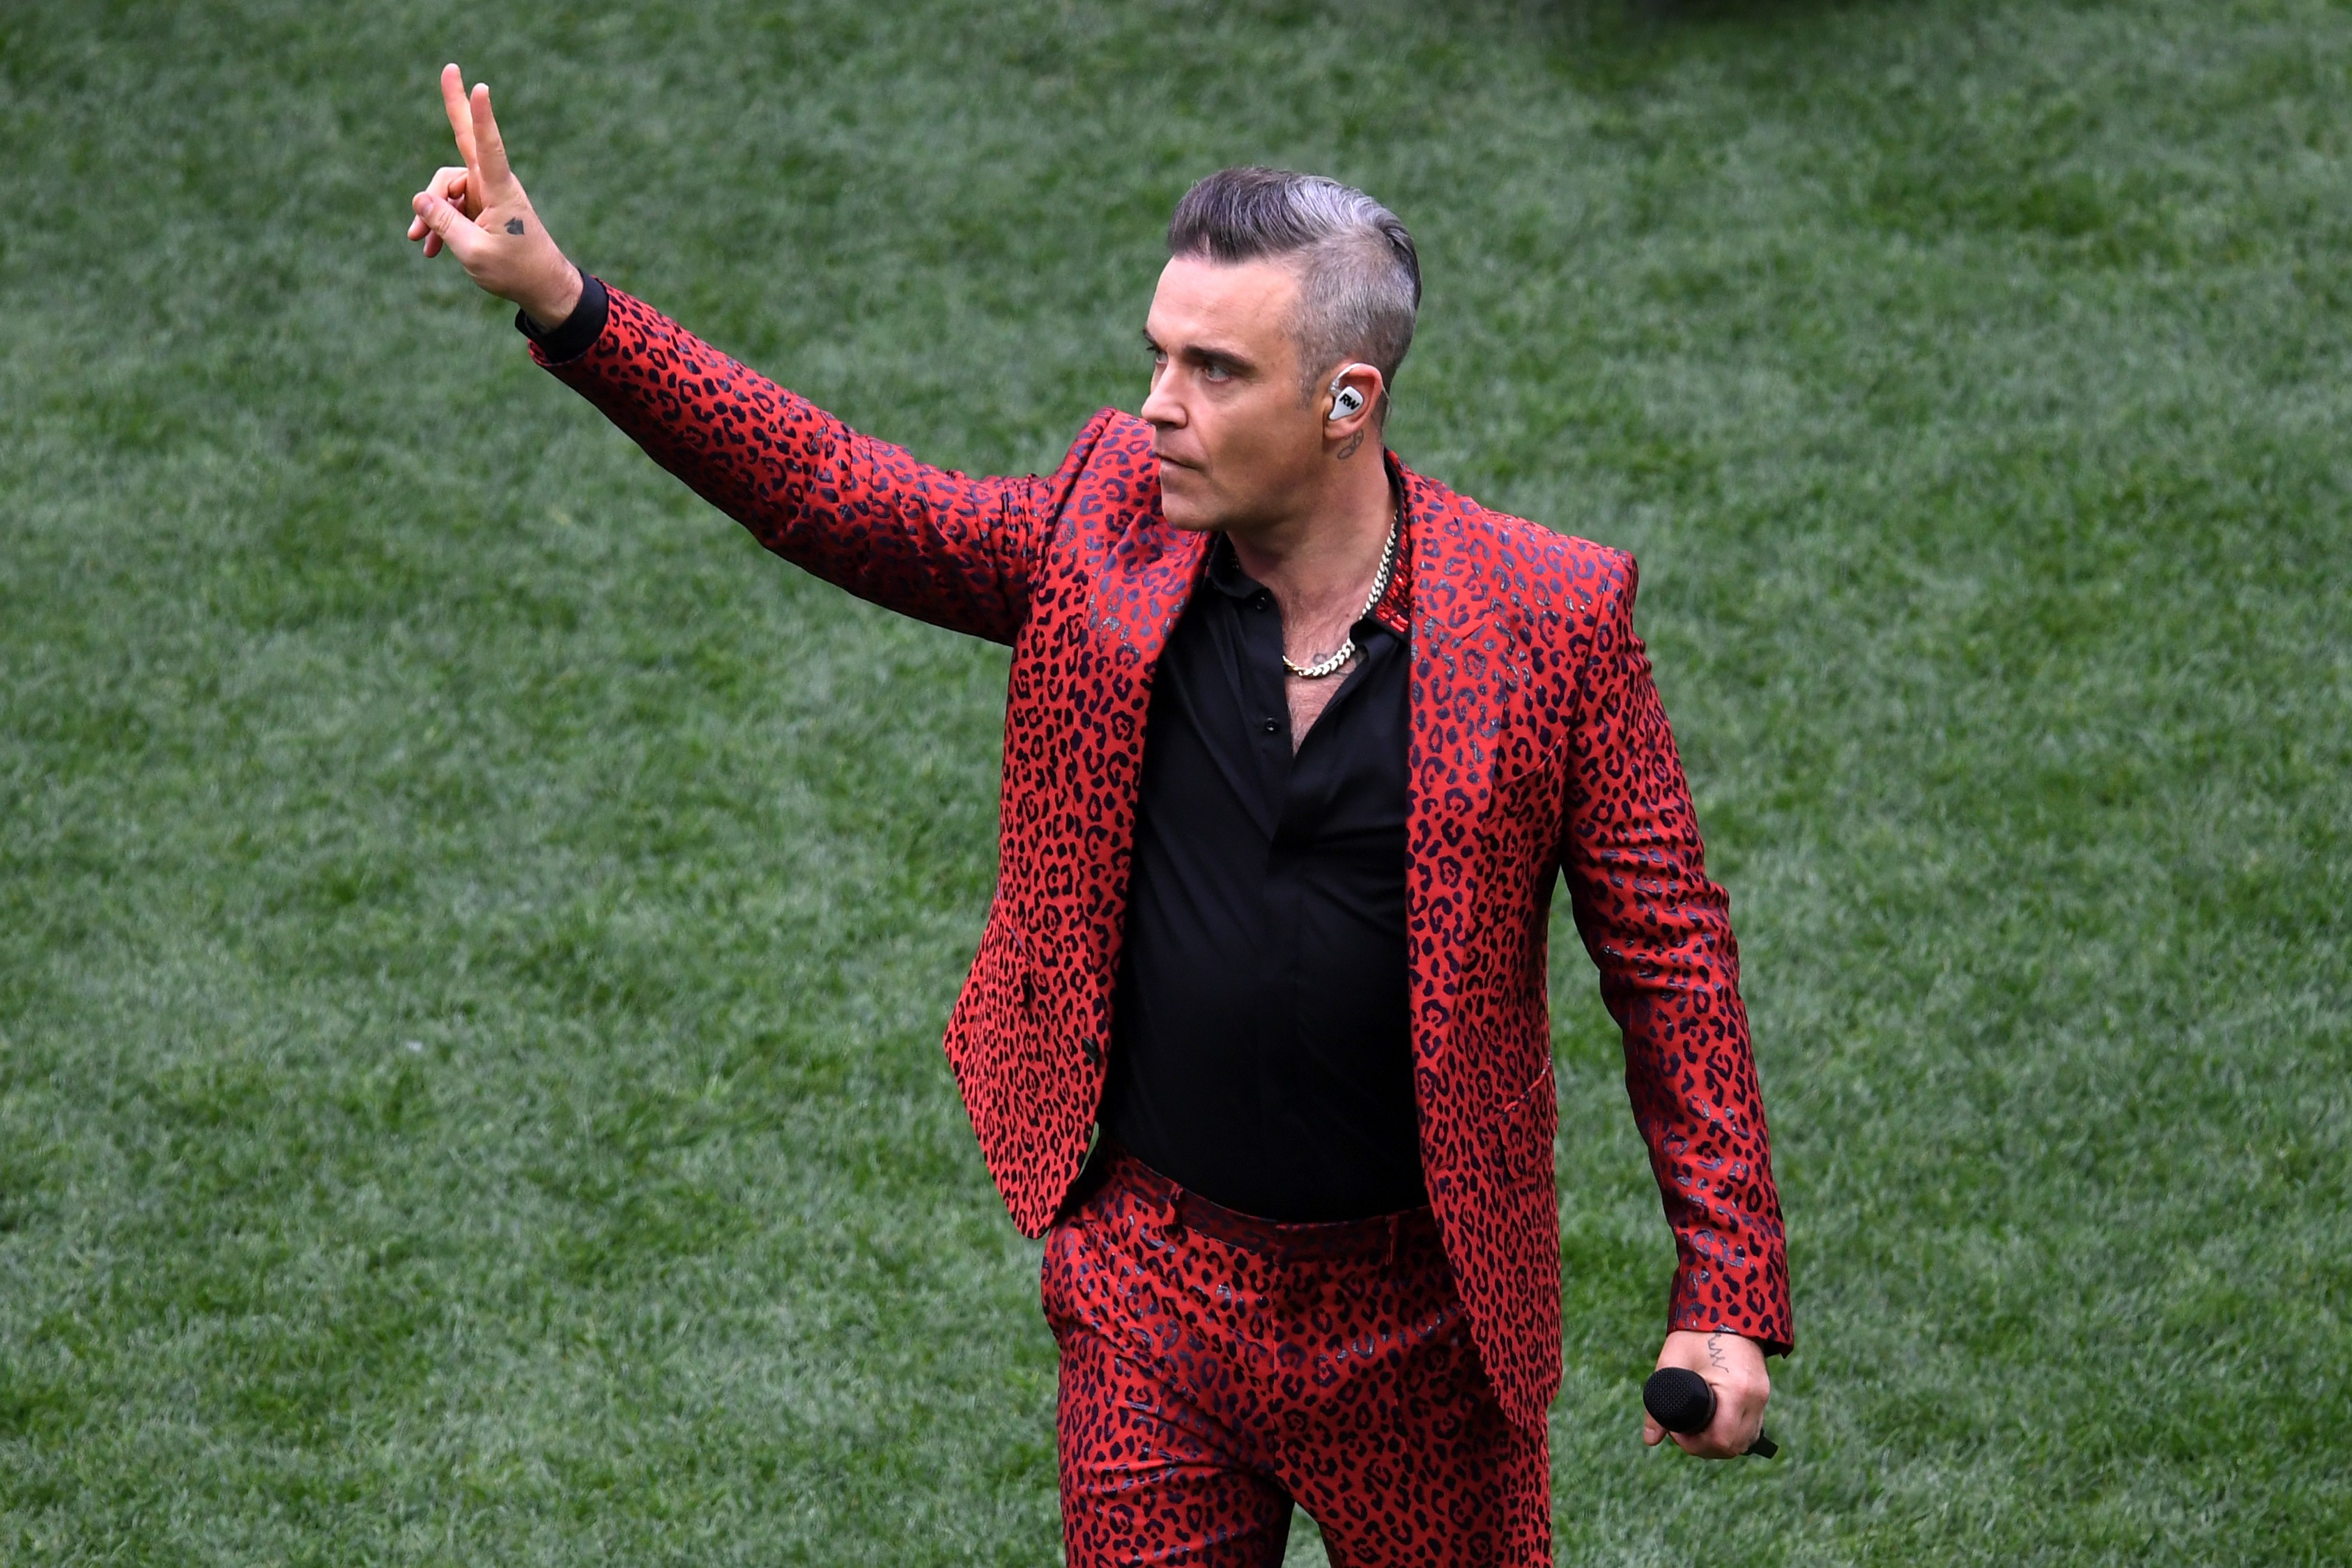 Robbie Williams se apresenta na abertura da Copa do Mundo de 2018 (Foto: Getty Images/Shaun Botterill)